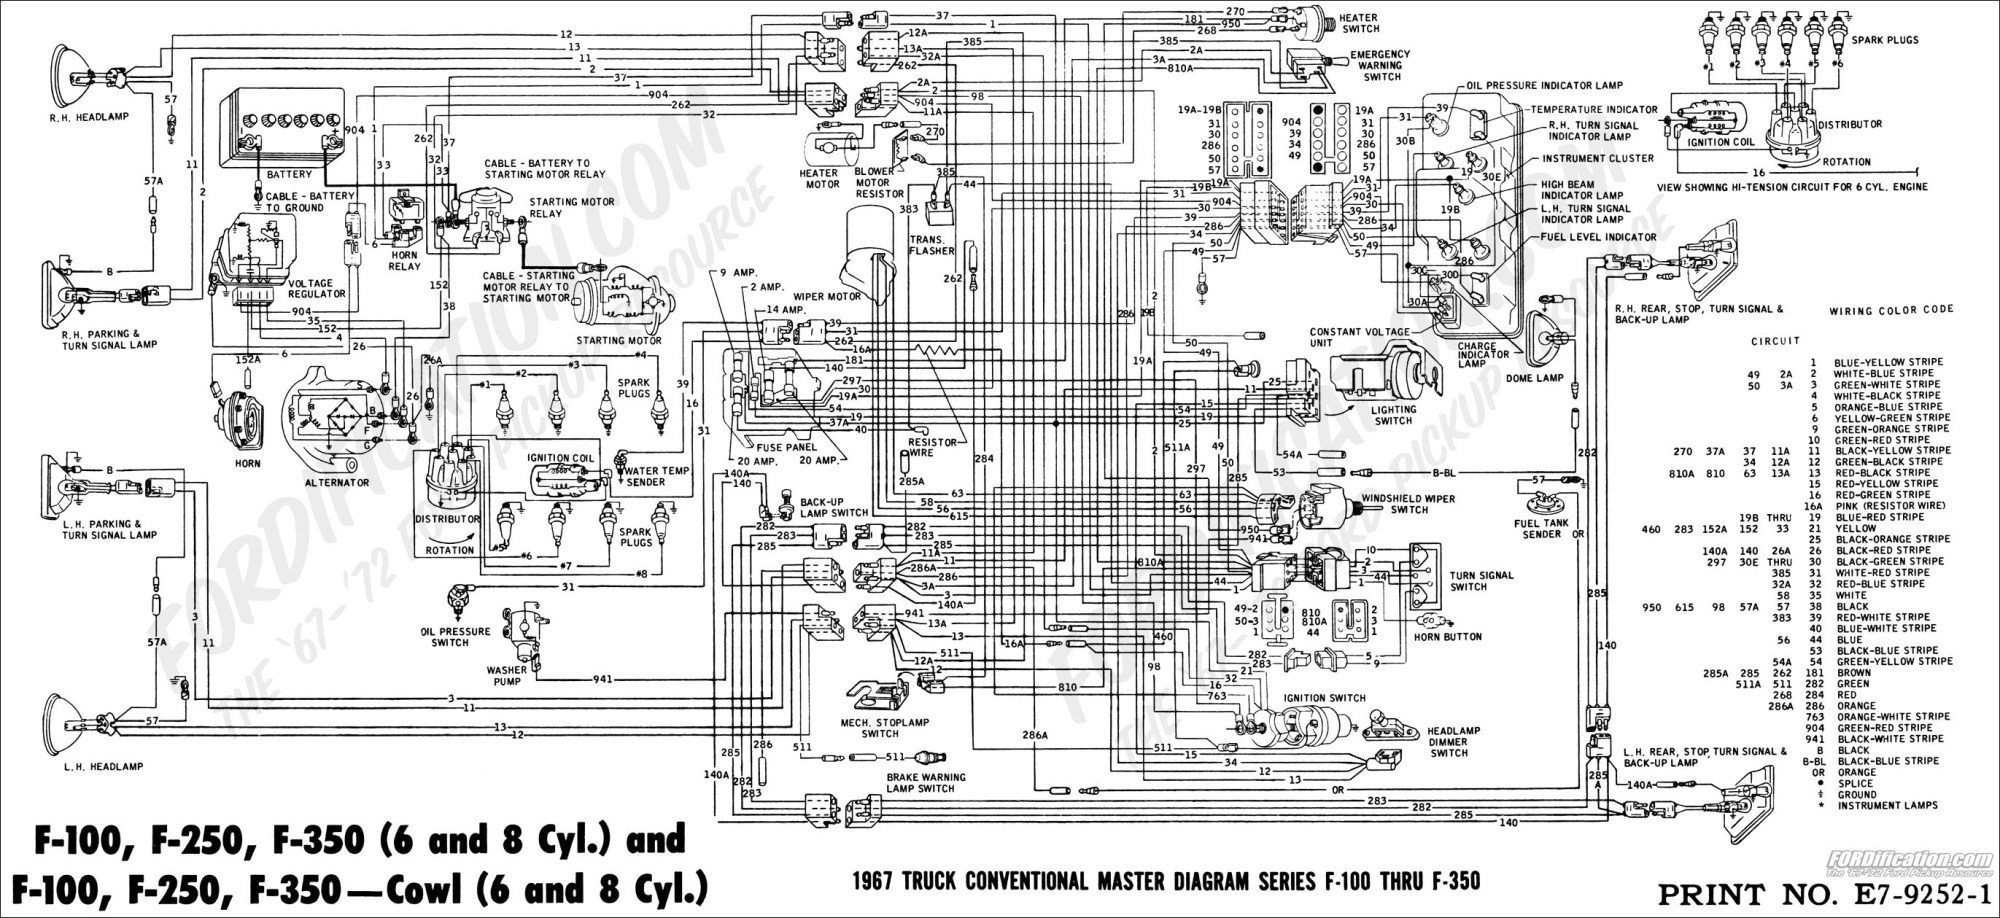 hight resolution of 1993 ford f350 wiring wiring diagram fascinating 1993 ford f350 headlight wiring 1993 f350 wiring diagram